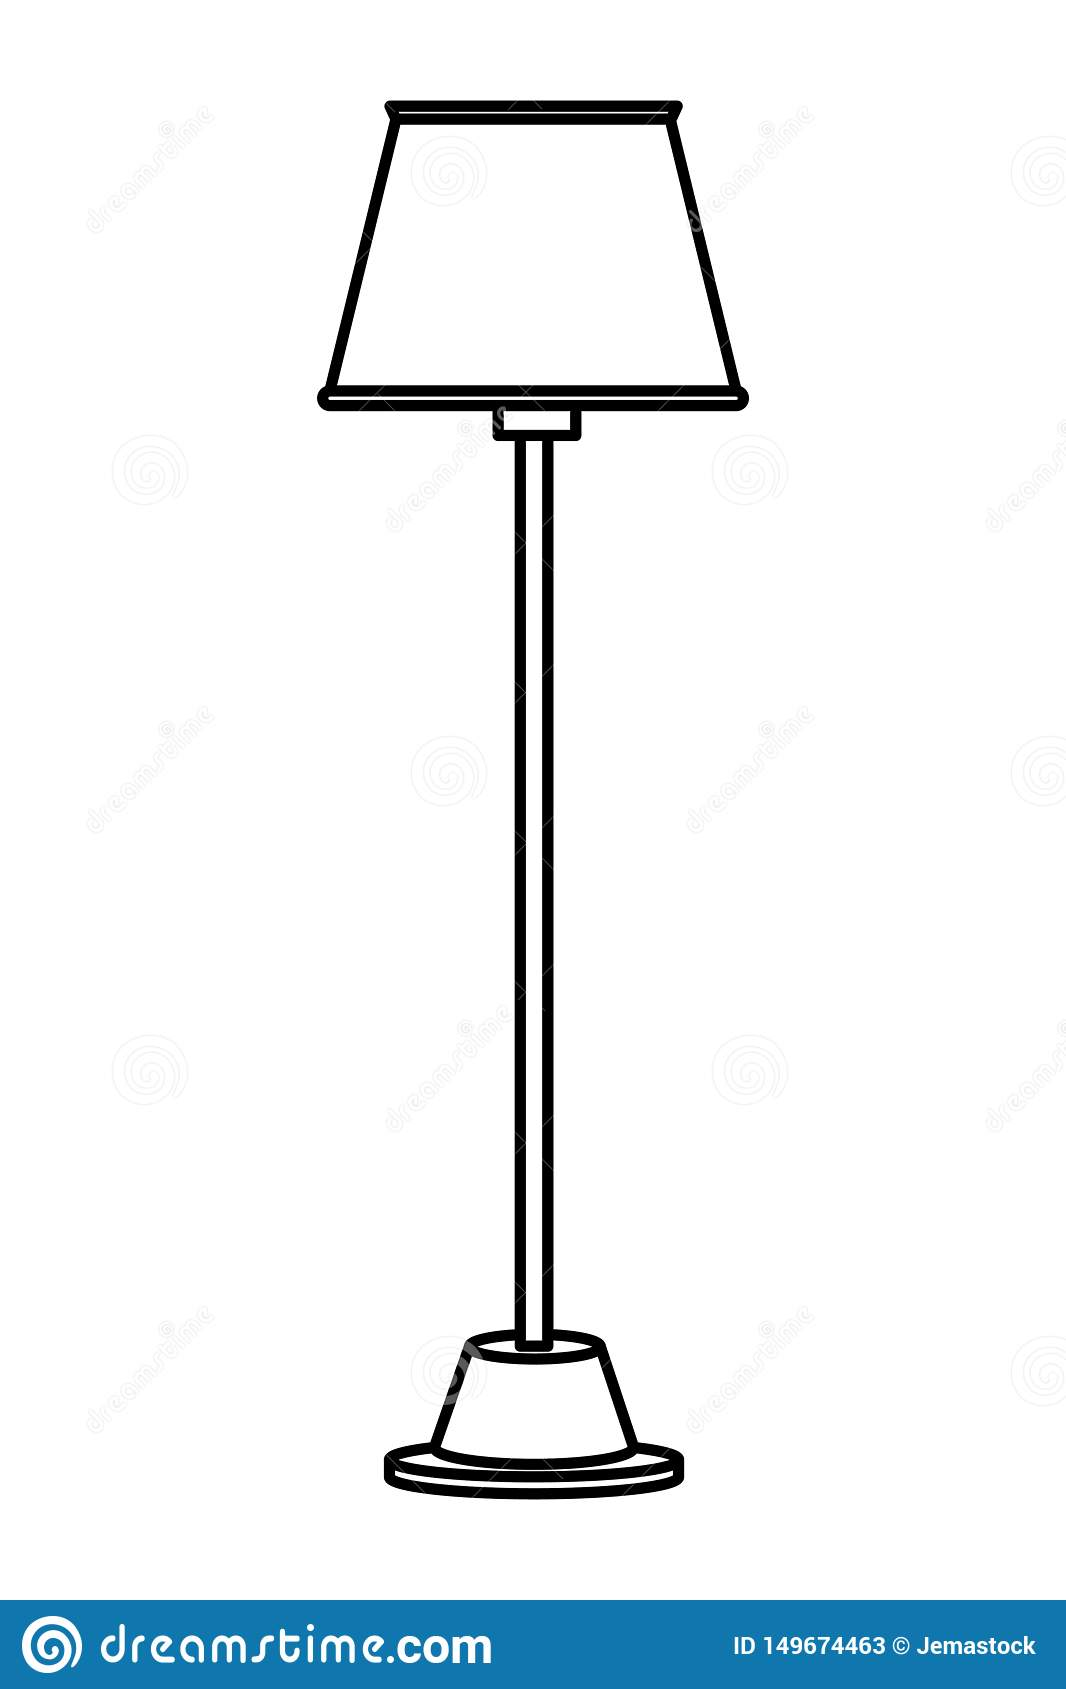 Picture of: Floor Lamp Icon Cartoon Isolated Black And White Stock Vector Illustration Of Floor Metal 149674463